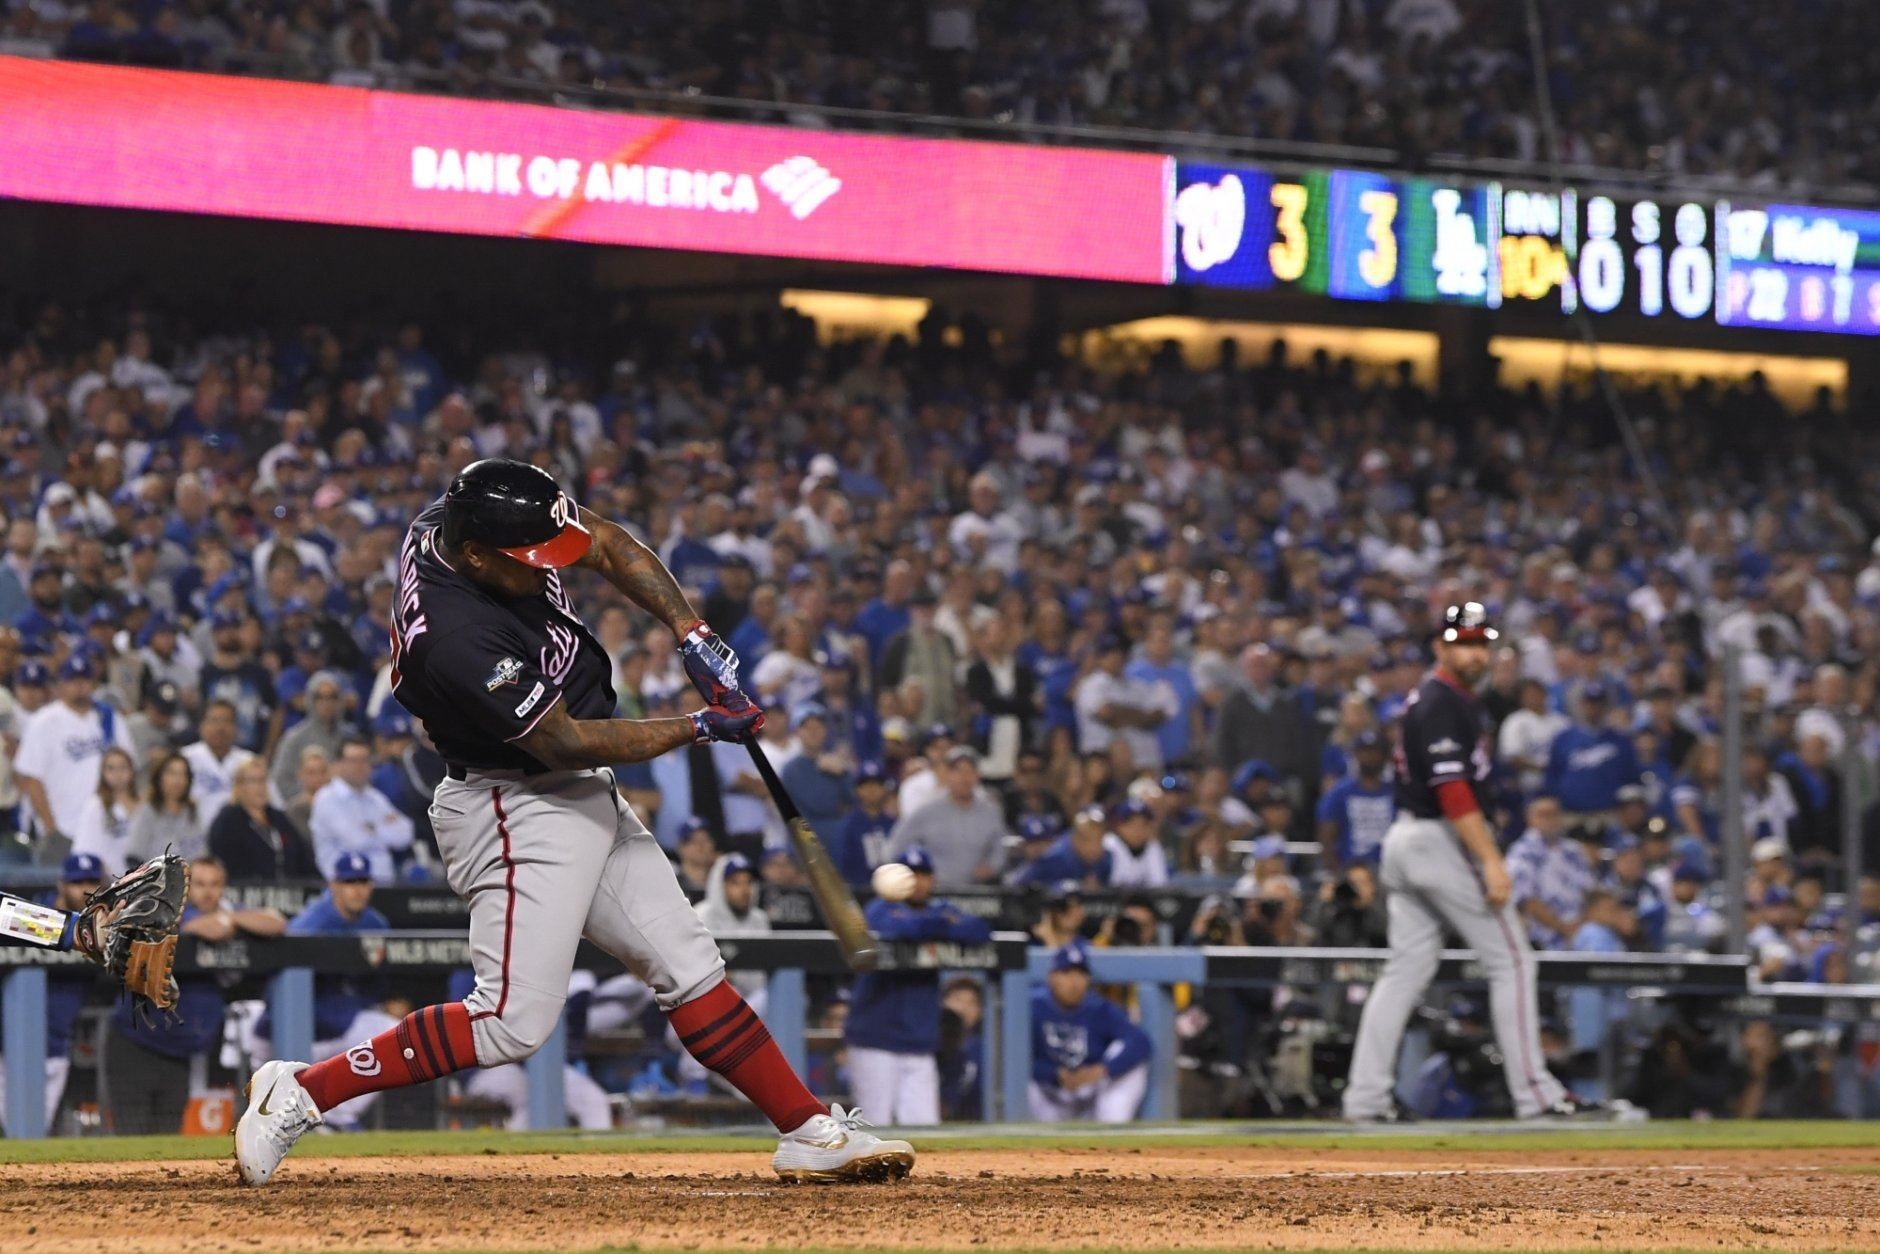 Washington Nationals' Howie Kendrick hits a grand slam against the Los Angeles Dodgers during the 10th inning in Game 5 of a baseball National League Division Series on Wednesday, Oct. 9, 2019, in Los Angeles. (AP Photo/Mark J. Terrill)